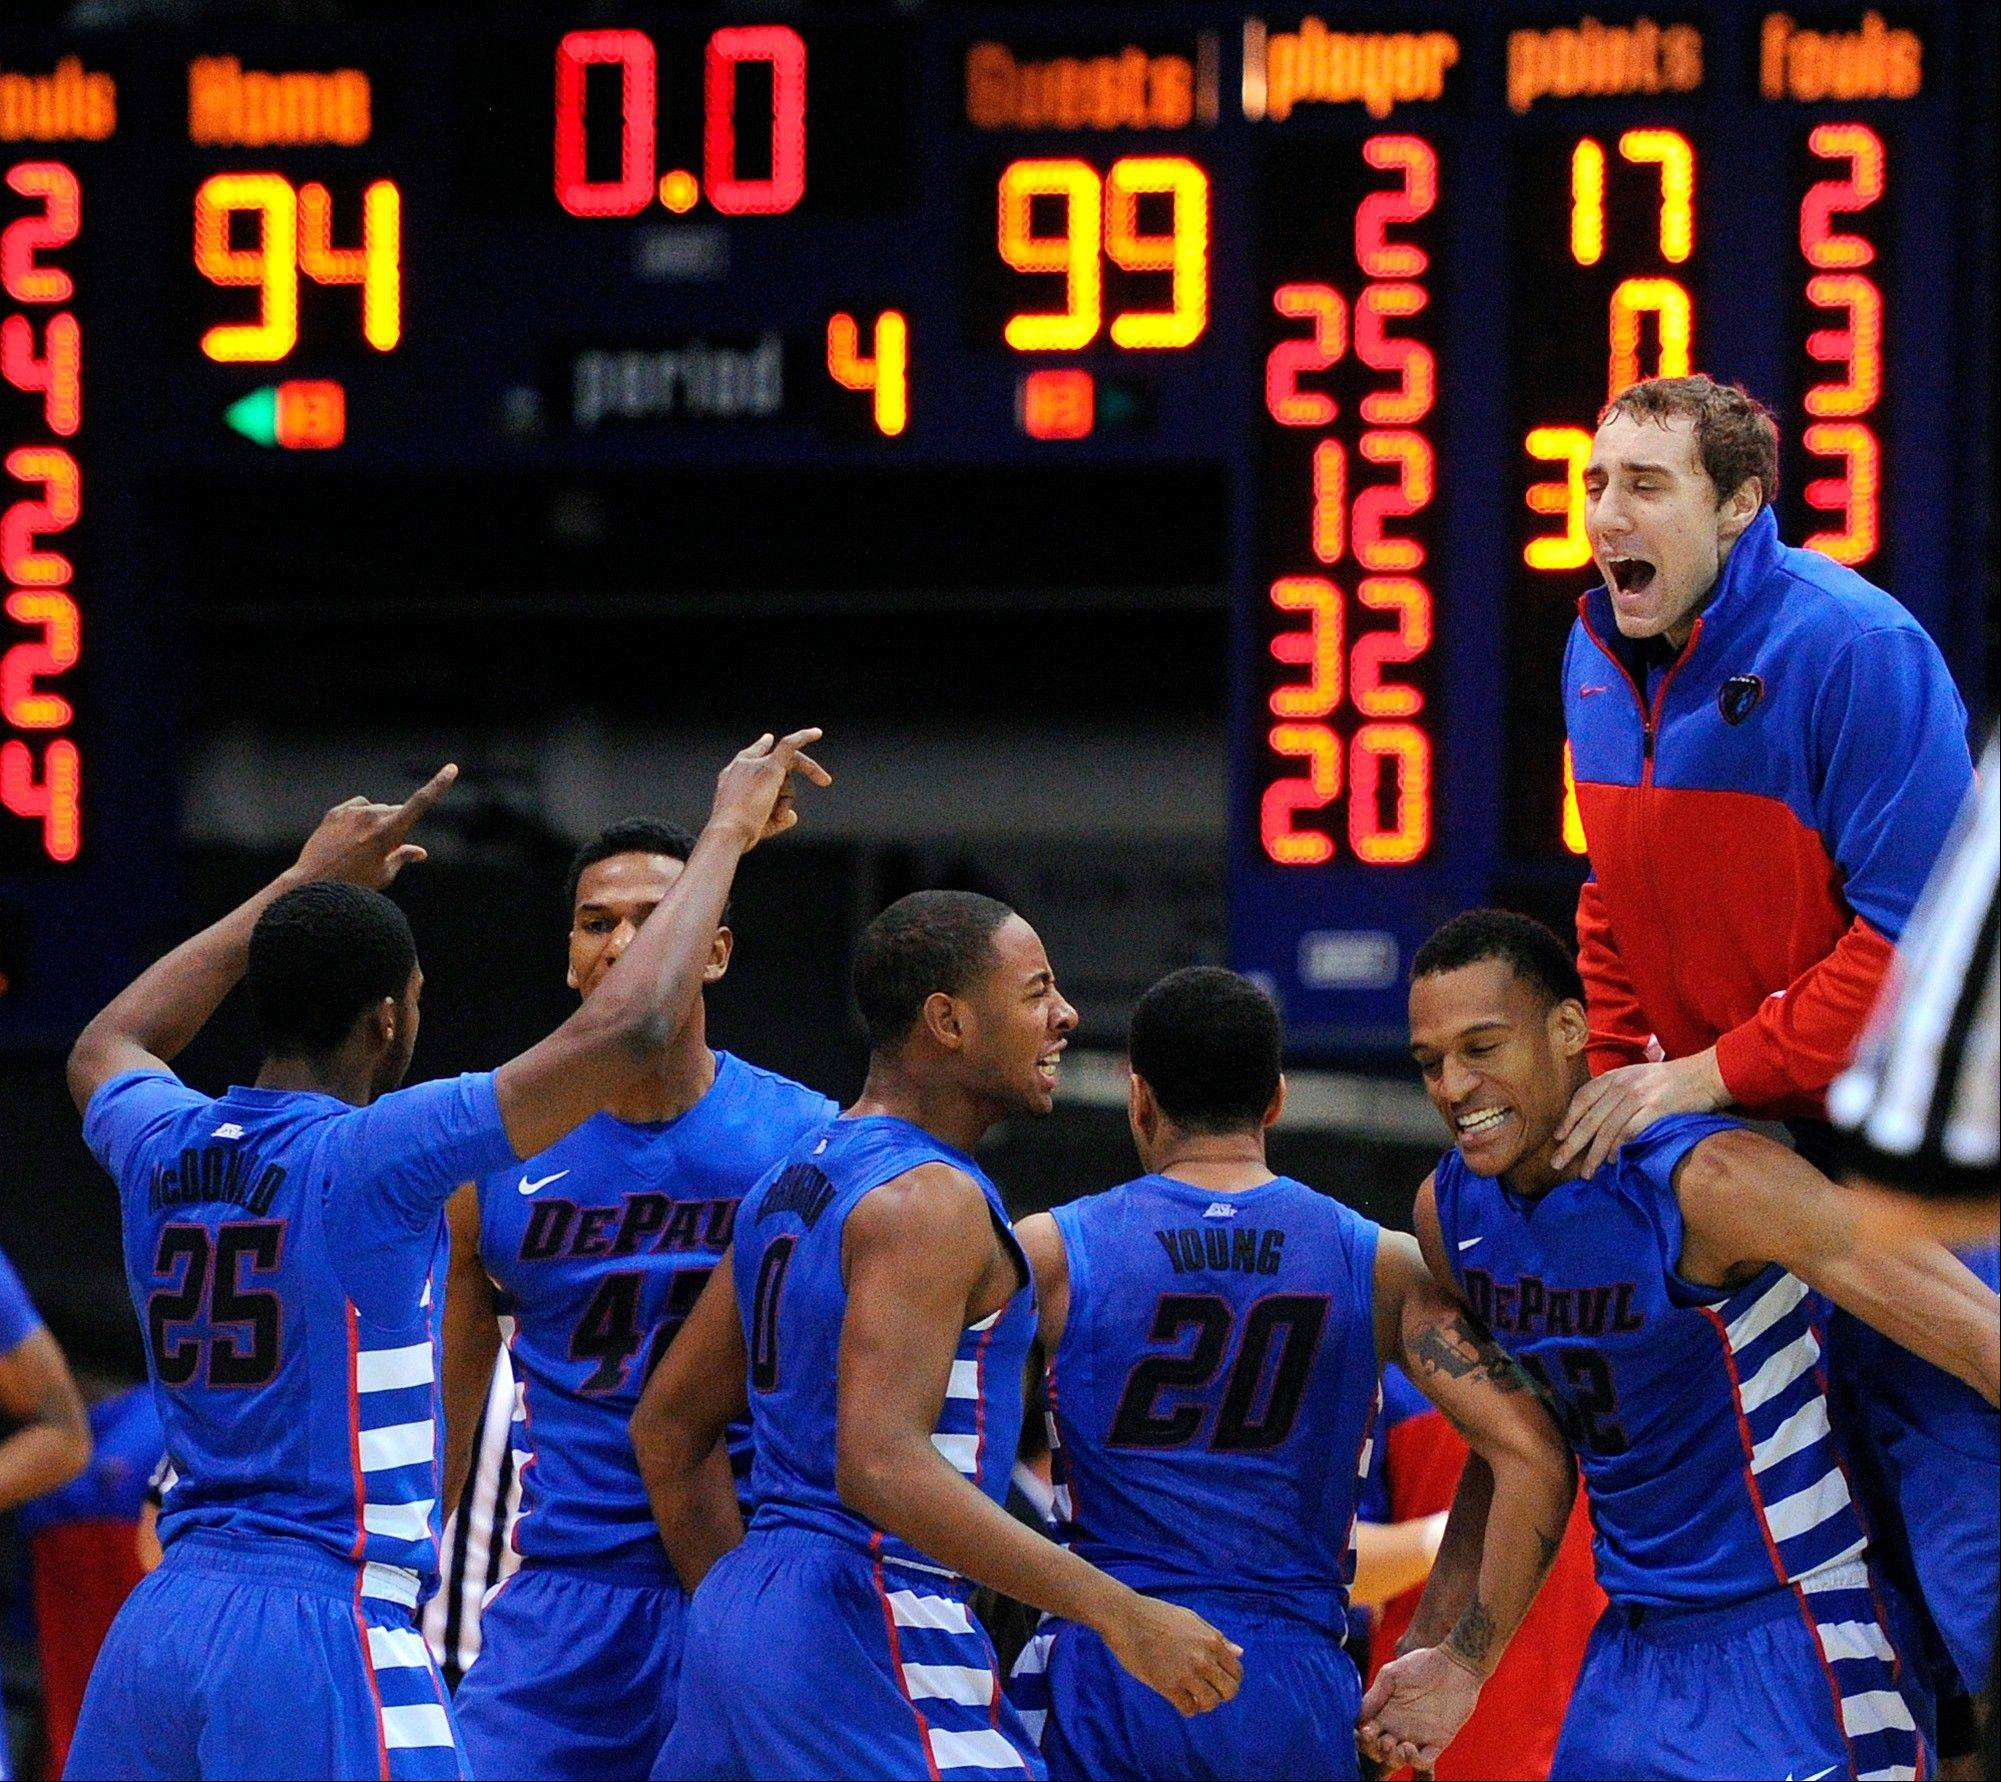 DePaul players celebrate after defeating beating Butler in an NCAA college basketball game Thursday, Jan. 9, 2014, in Indianapolis. DePaul won 99-94 in double overtime.